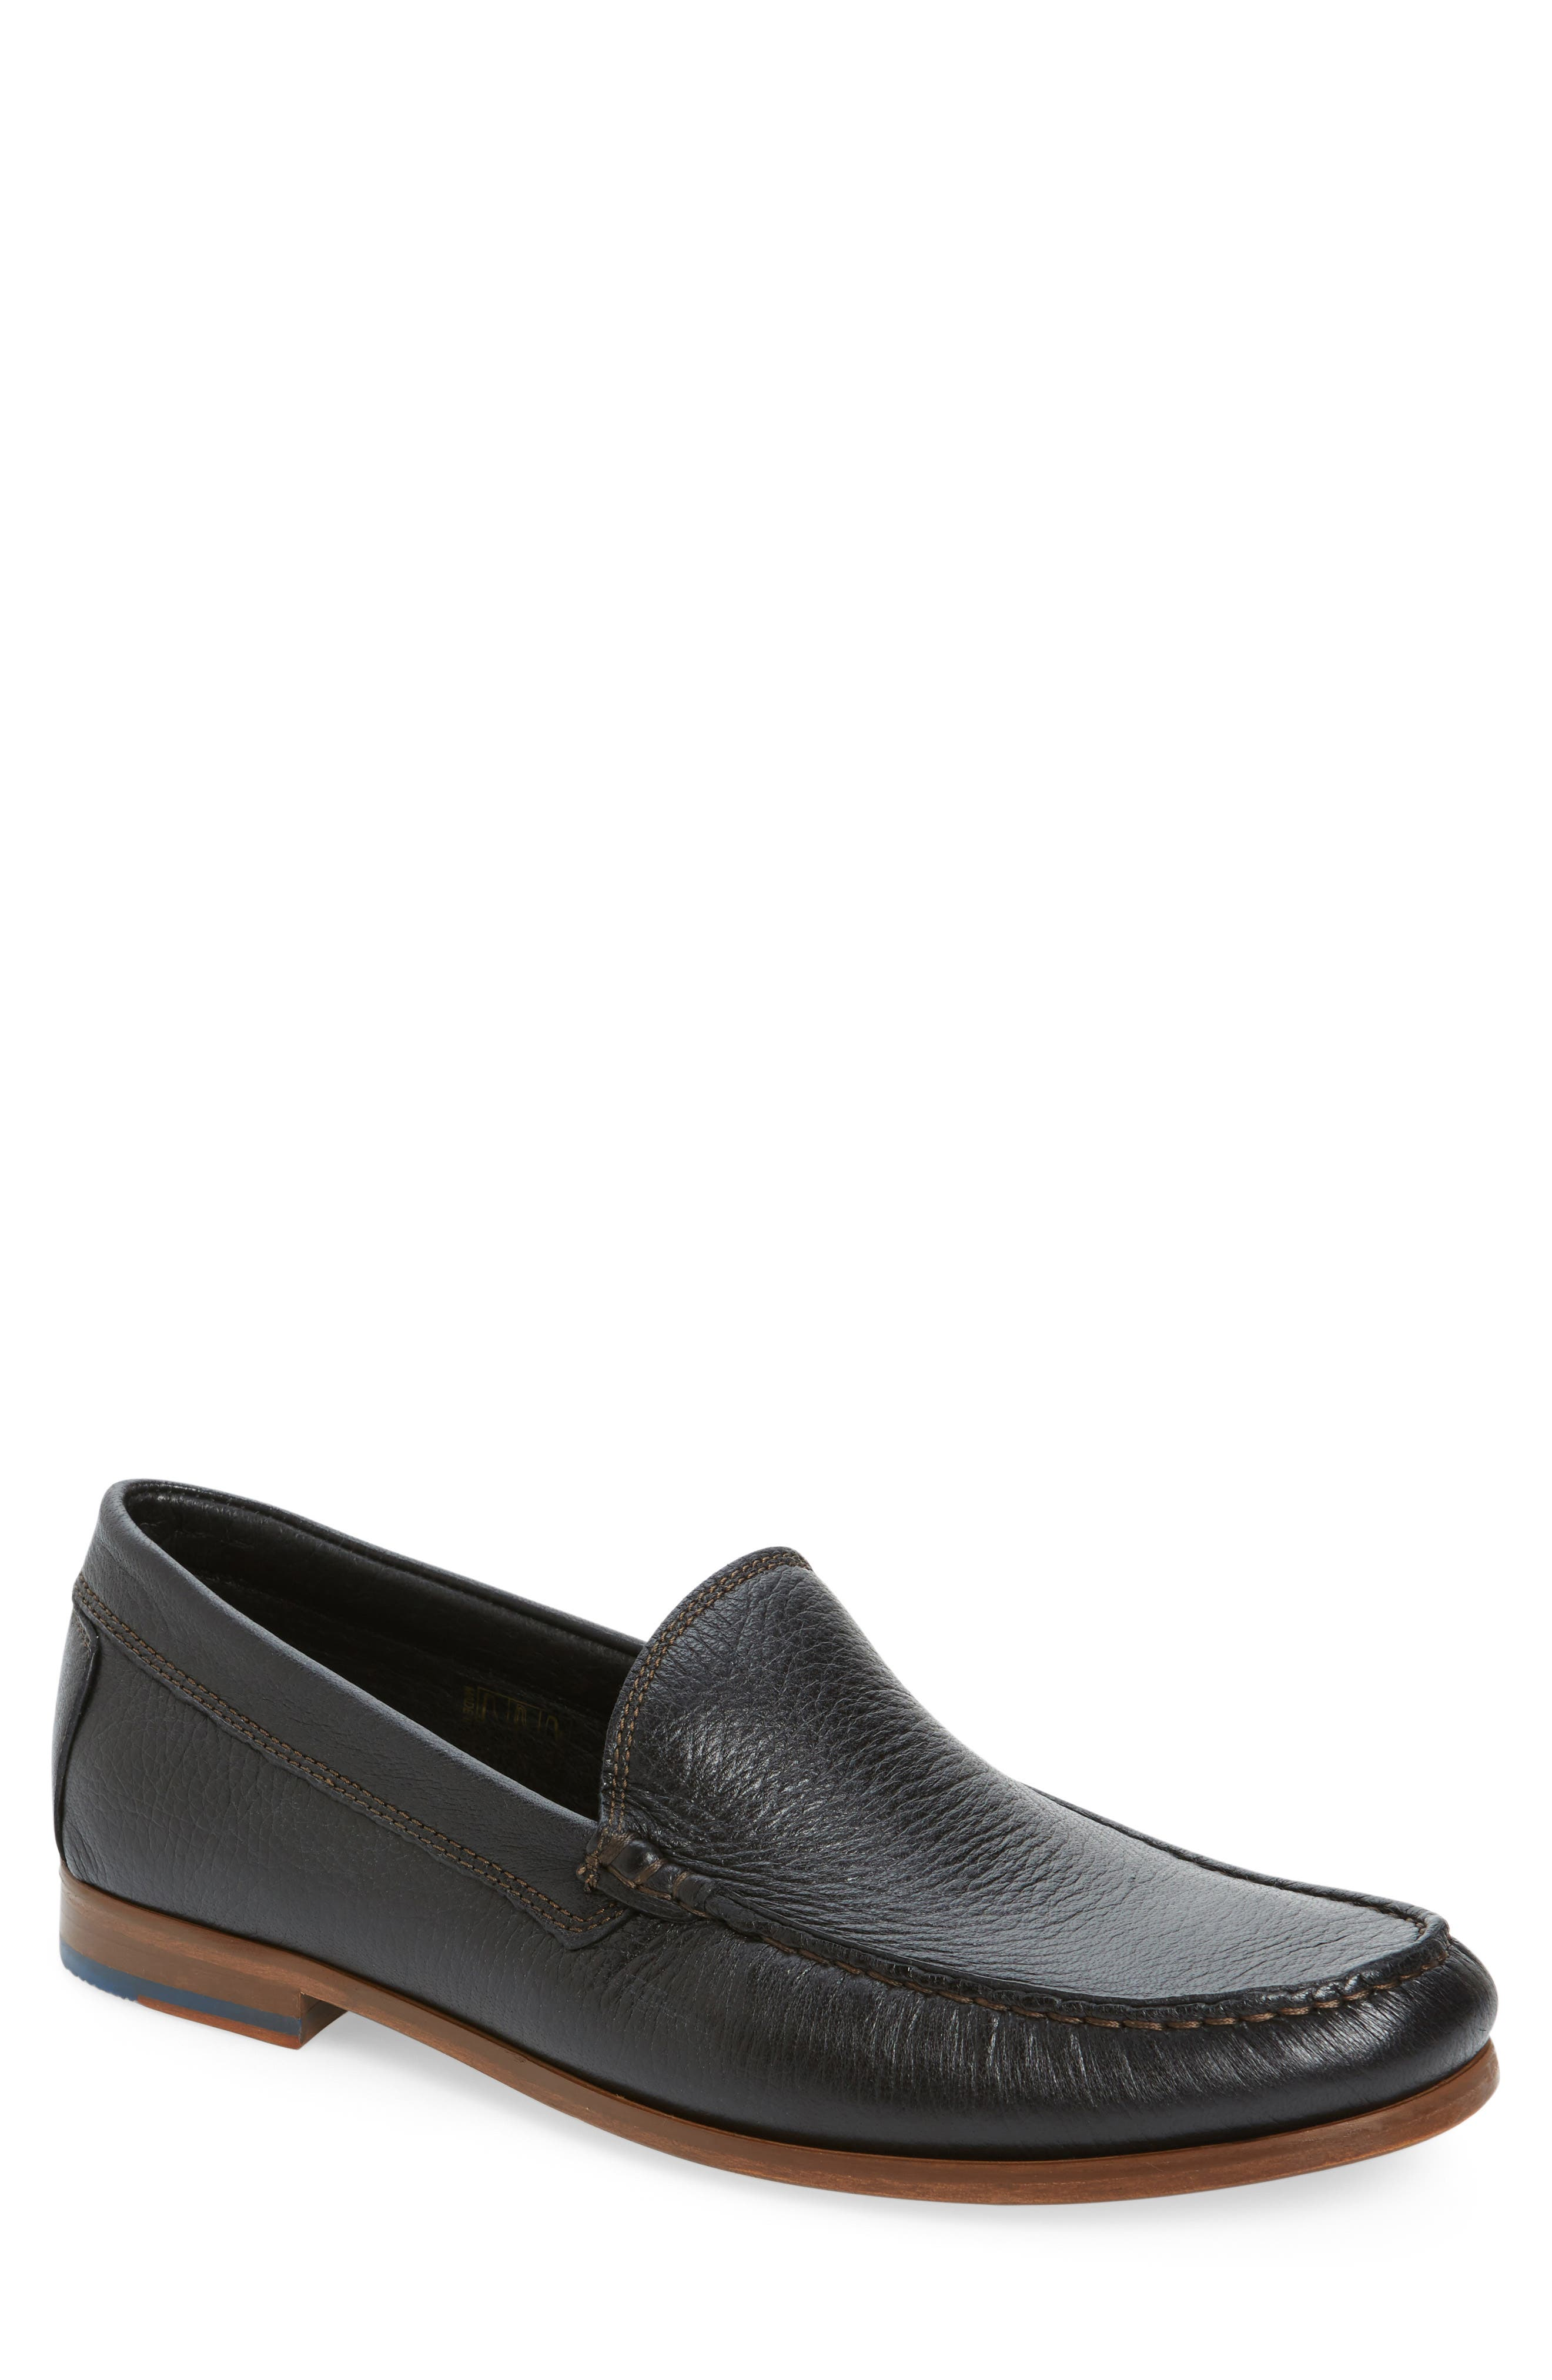 Donald J Pliner 'Nate' Loafer,                         Main,                         color,